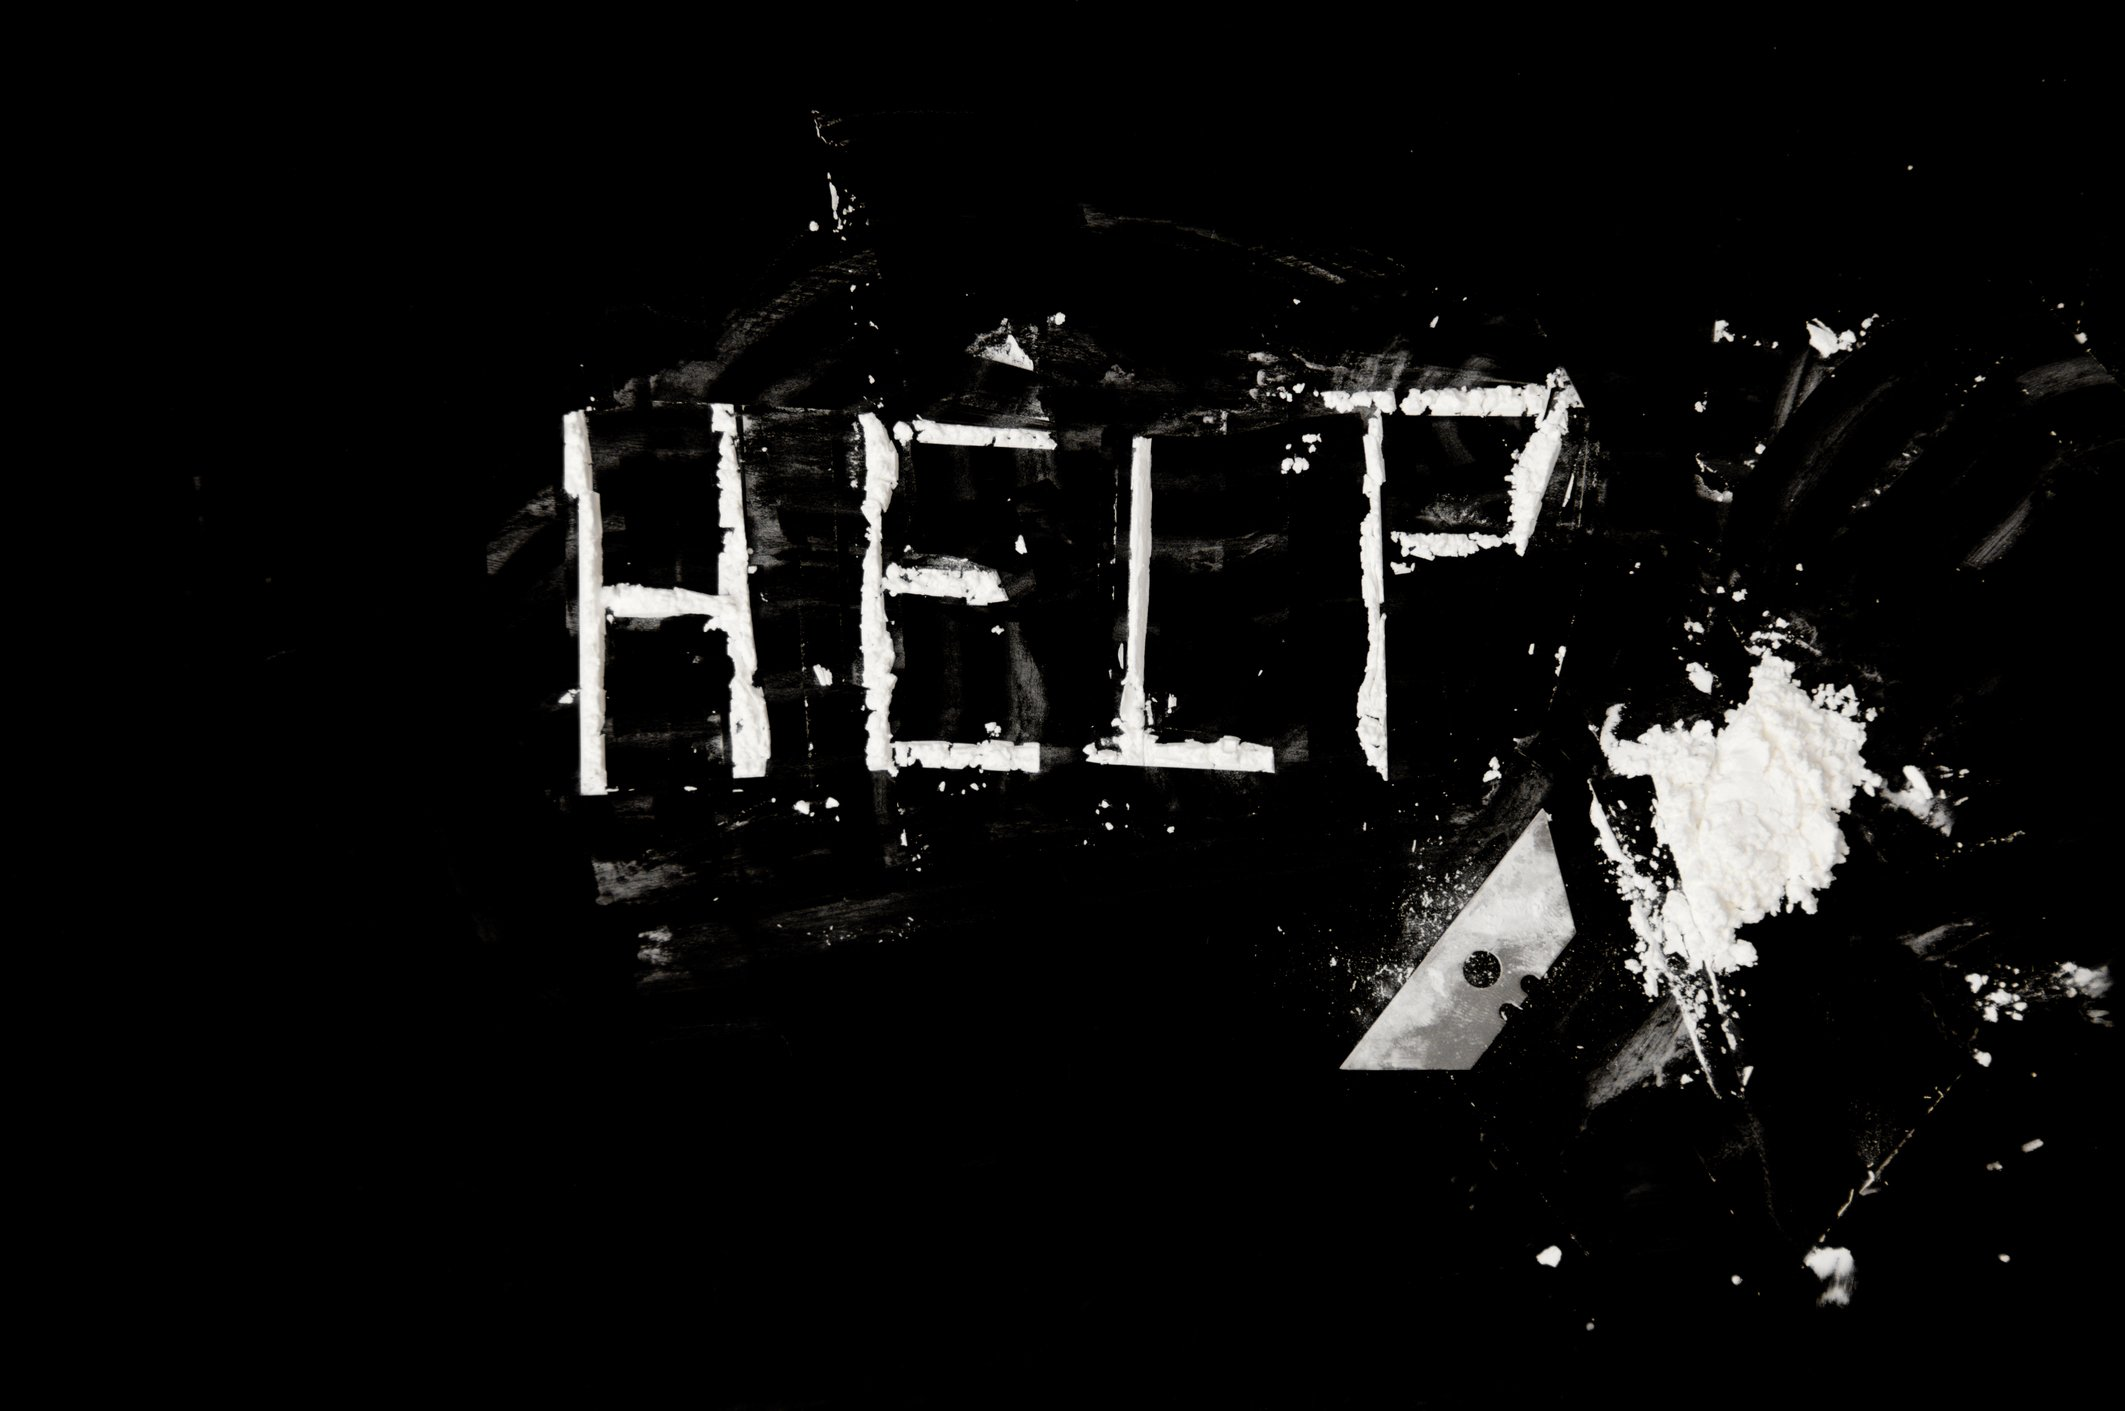 The word help written in cocaine with a razor blade.